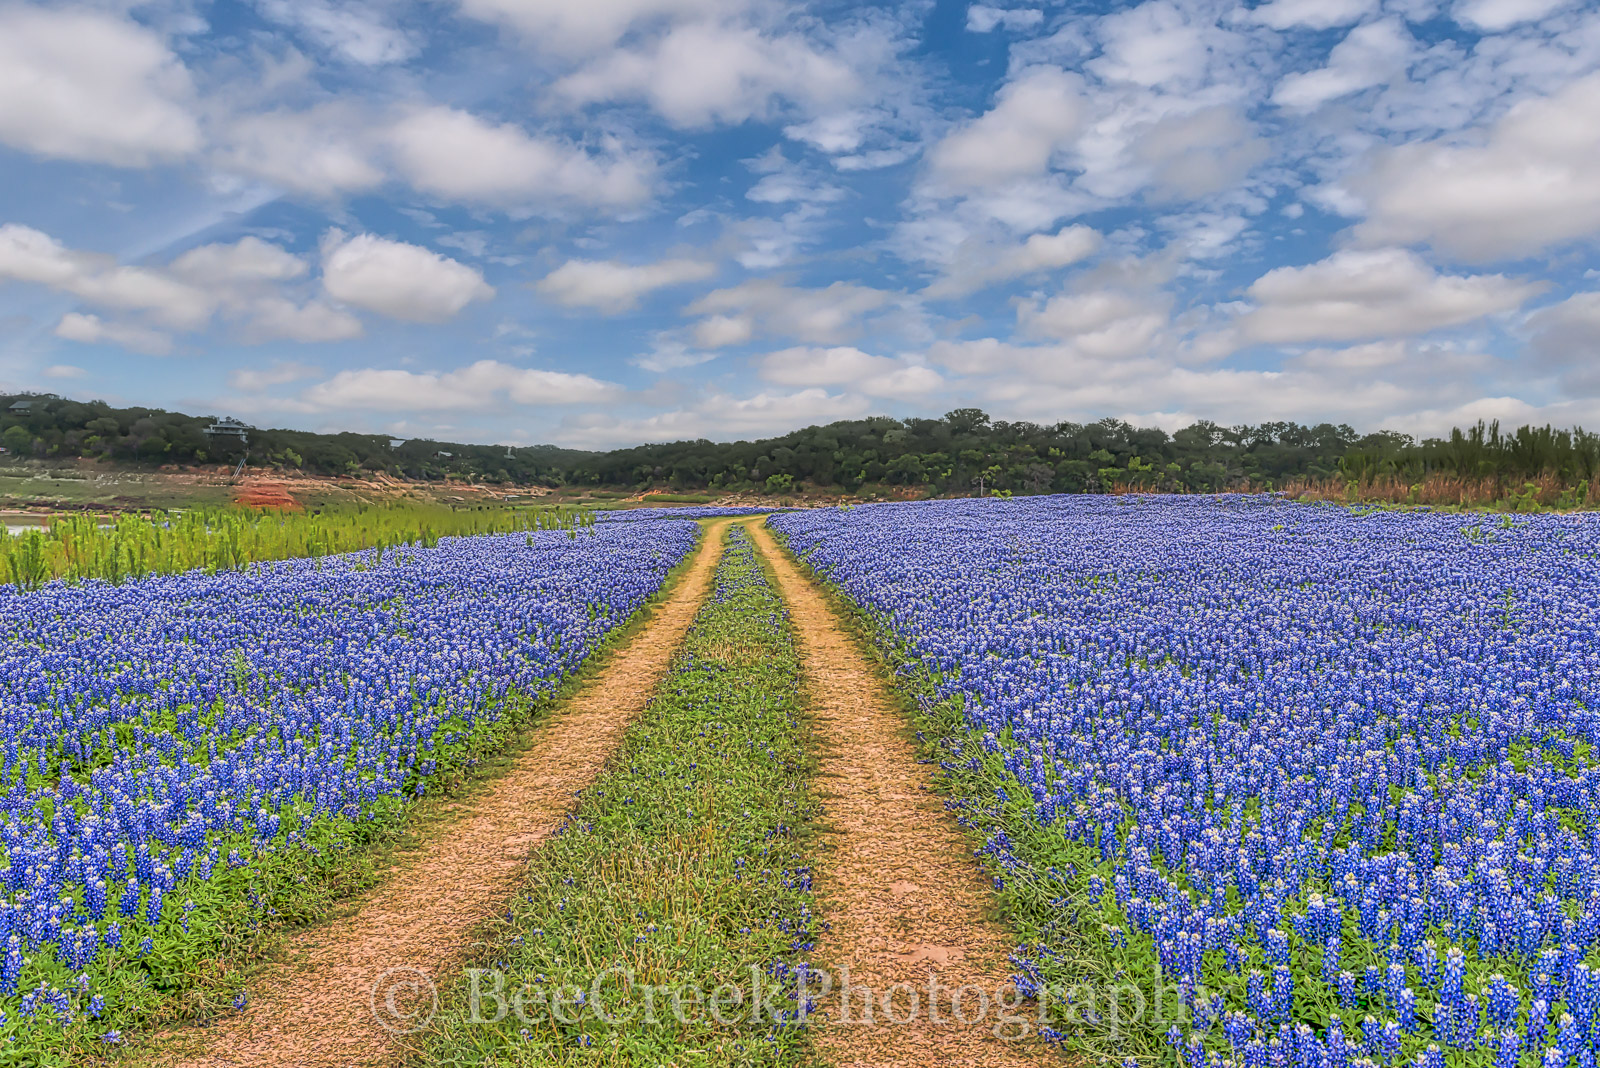 texas bluebonnets, bluebonnets, bluebonnet field, blue blonnets, images of blue bonnets, bluebonnets along the lake,  images of texas, photos from texas, road of bluebonnets, texas bluebonnet landscap